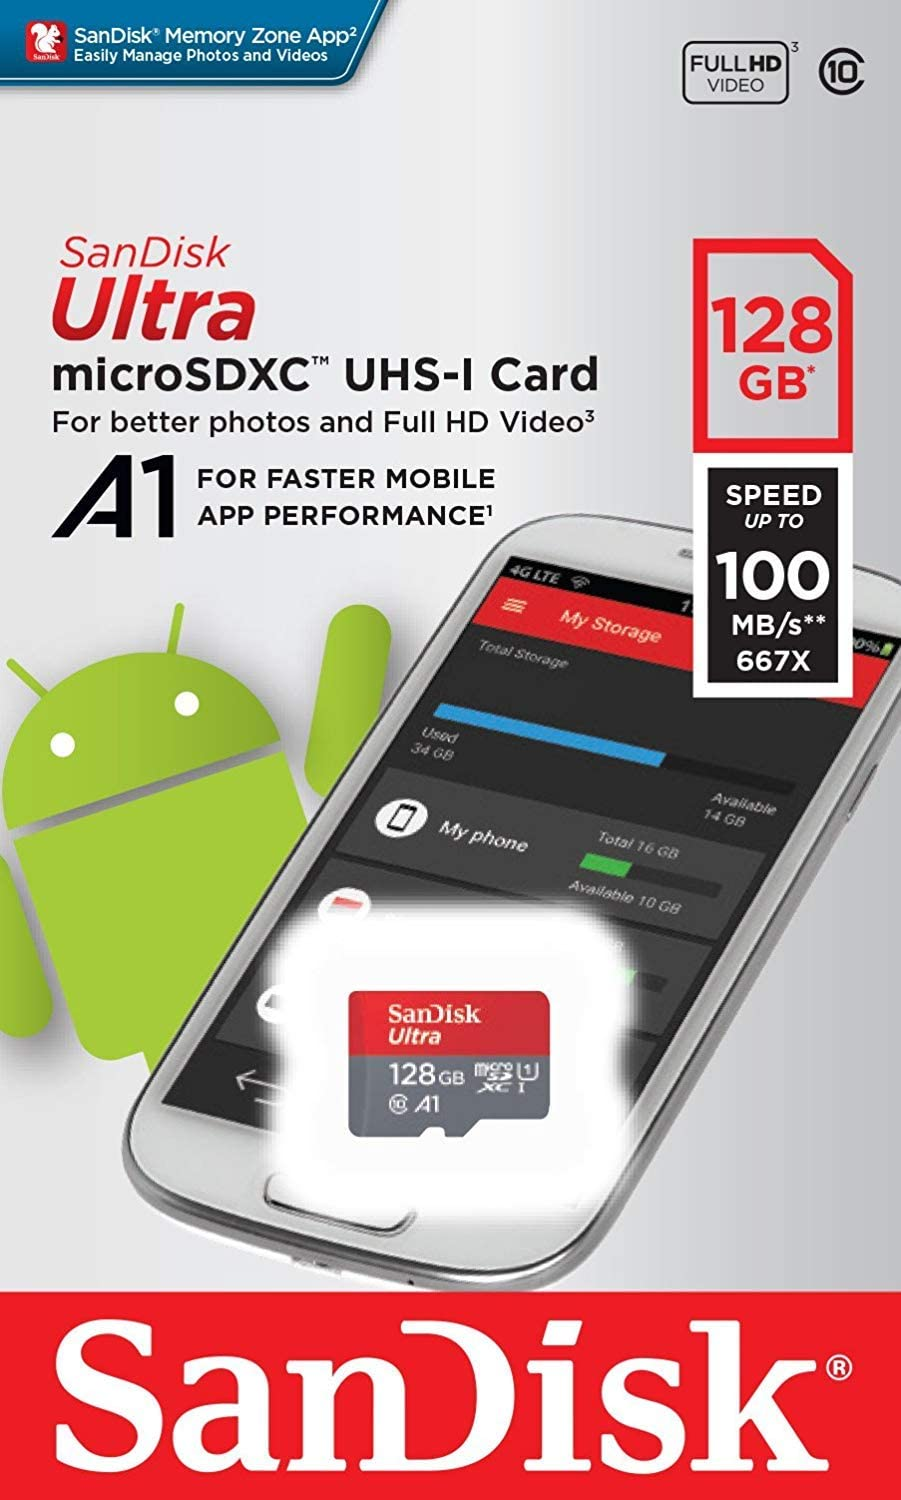 100MBs A1 U1 C10 Works with SanDisk SanDisk Ultra 128GB MicroSDXC Verified for Xiaomi Redmi 1S by SanFlash